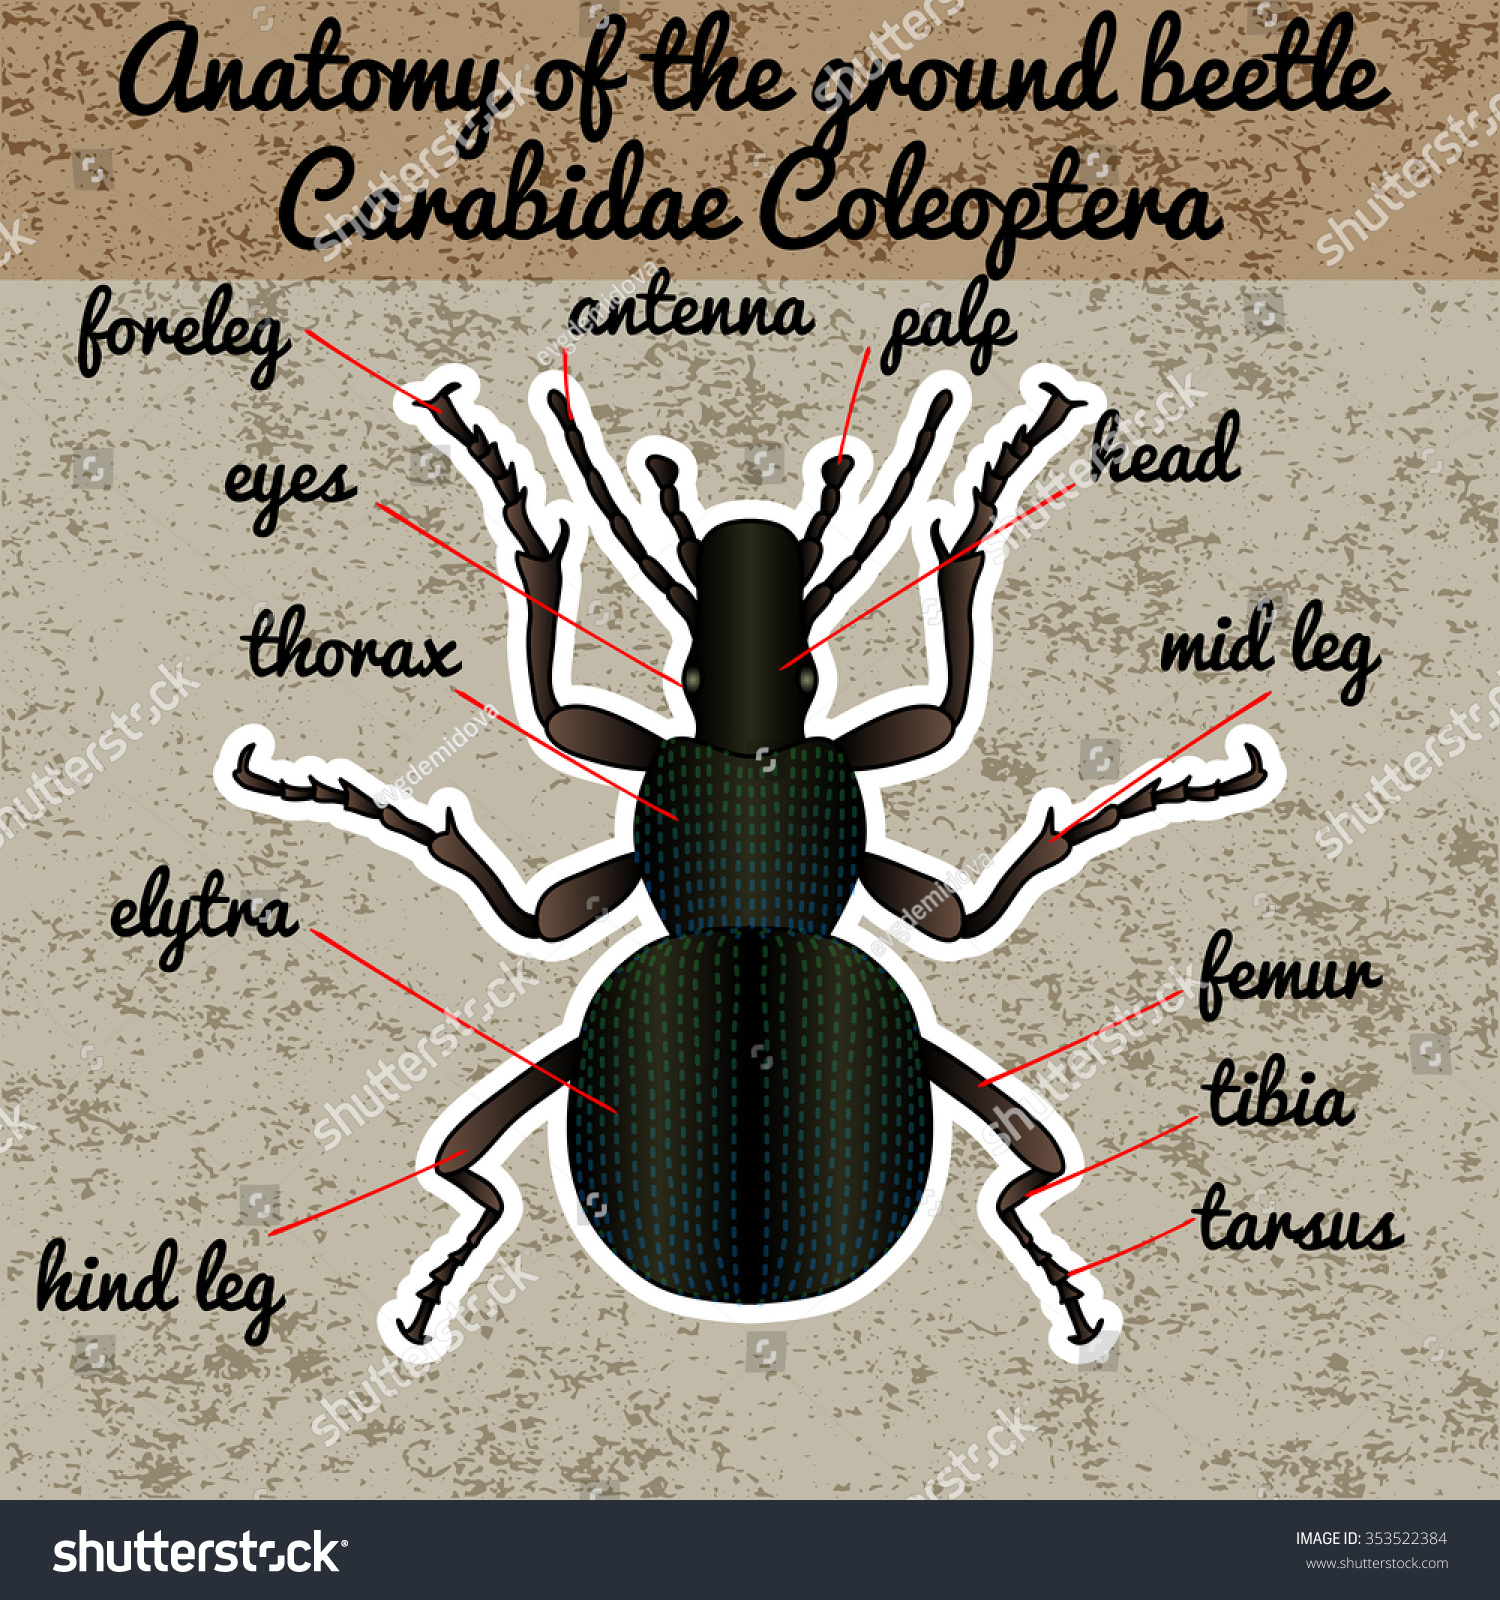 Insect Anatomy Sticker Ground Beetle Bug Stock Vector 353522384 ...